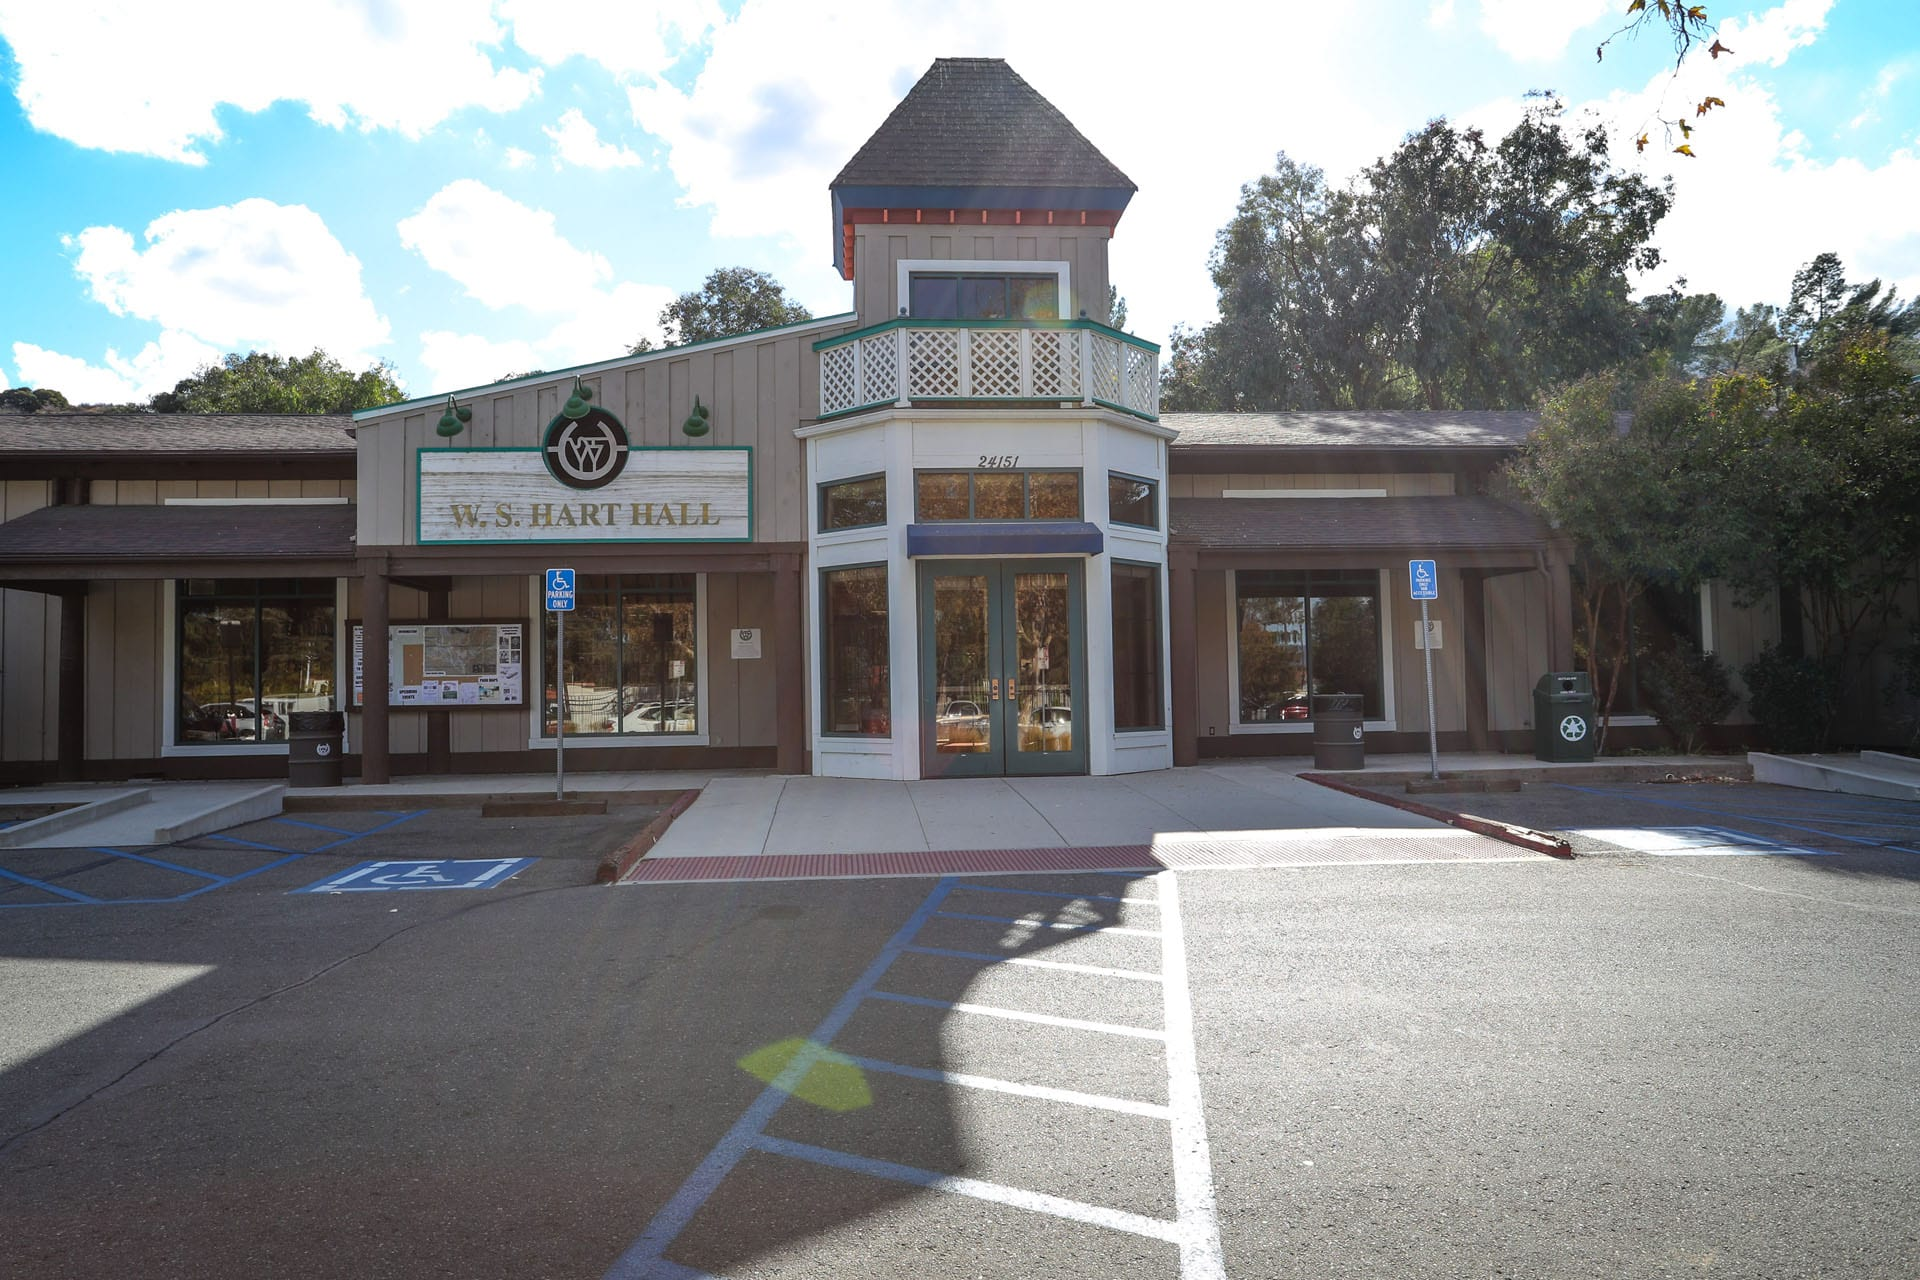 William S. Hart Regional Park store